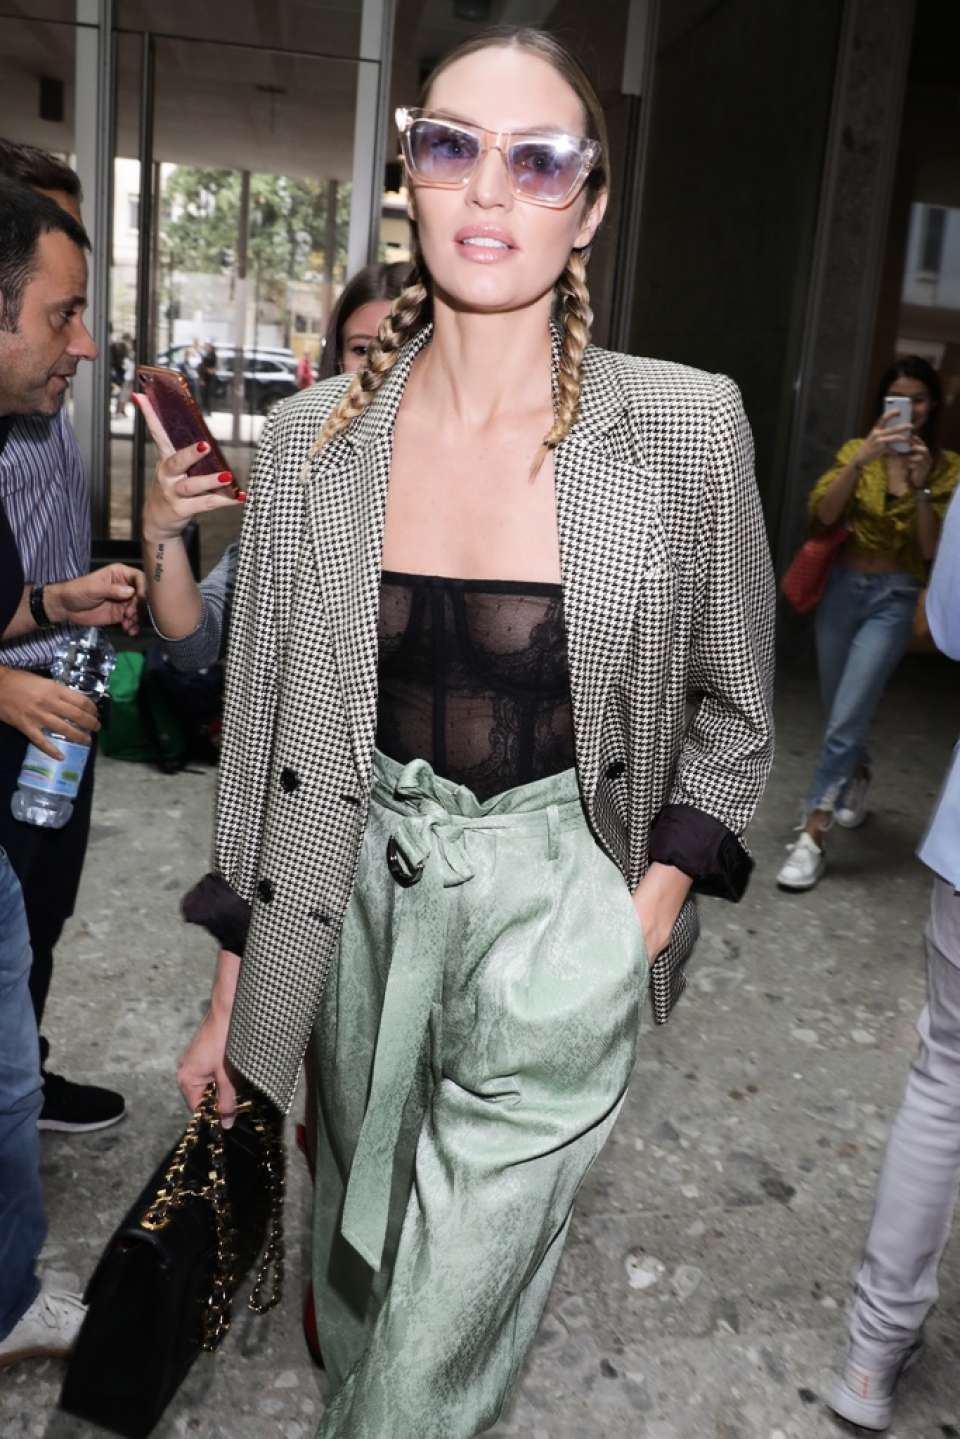 Candice Swanepoel - Leaving the Max Mara Show in Milan